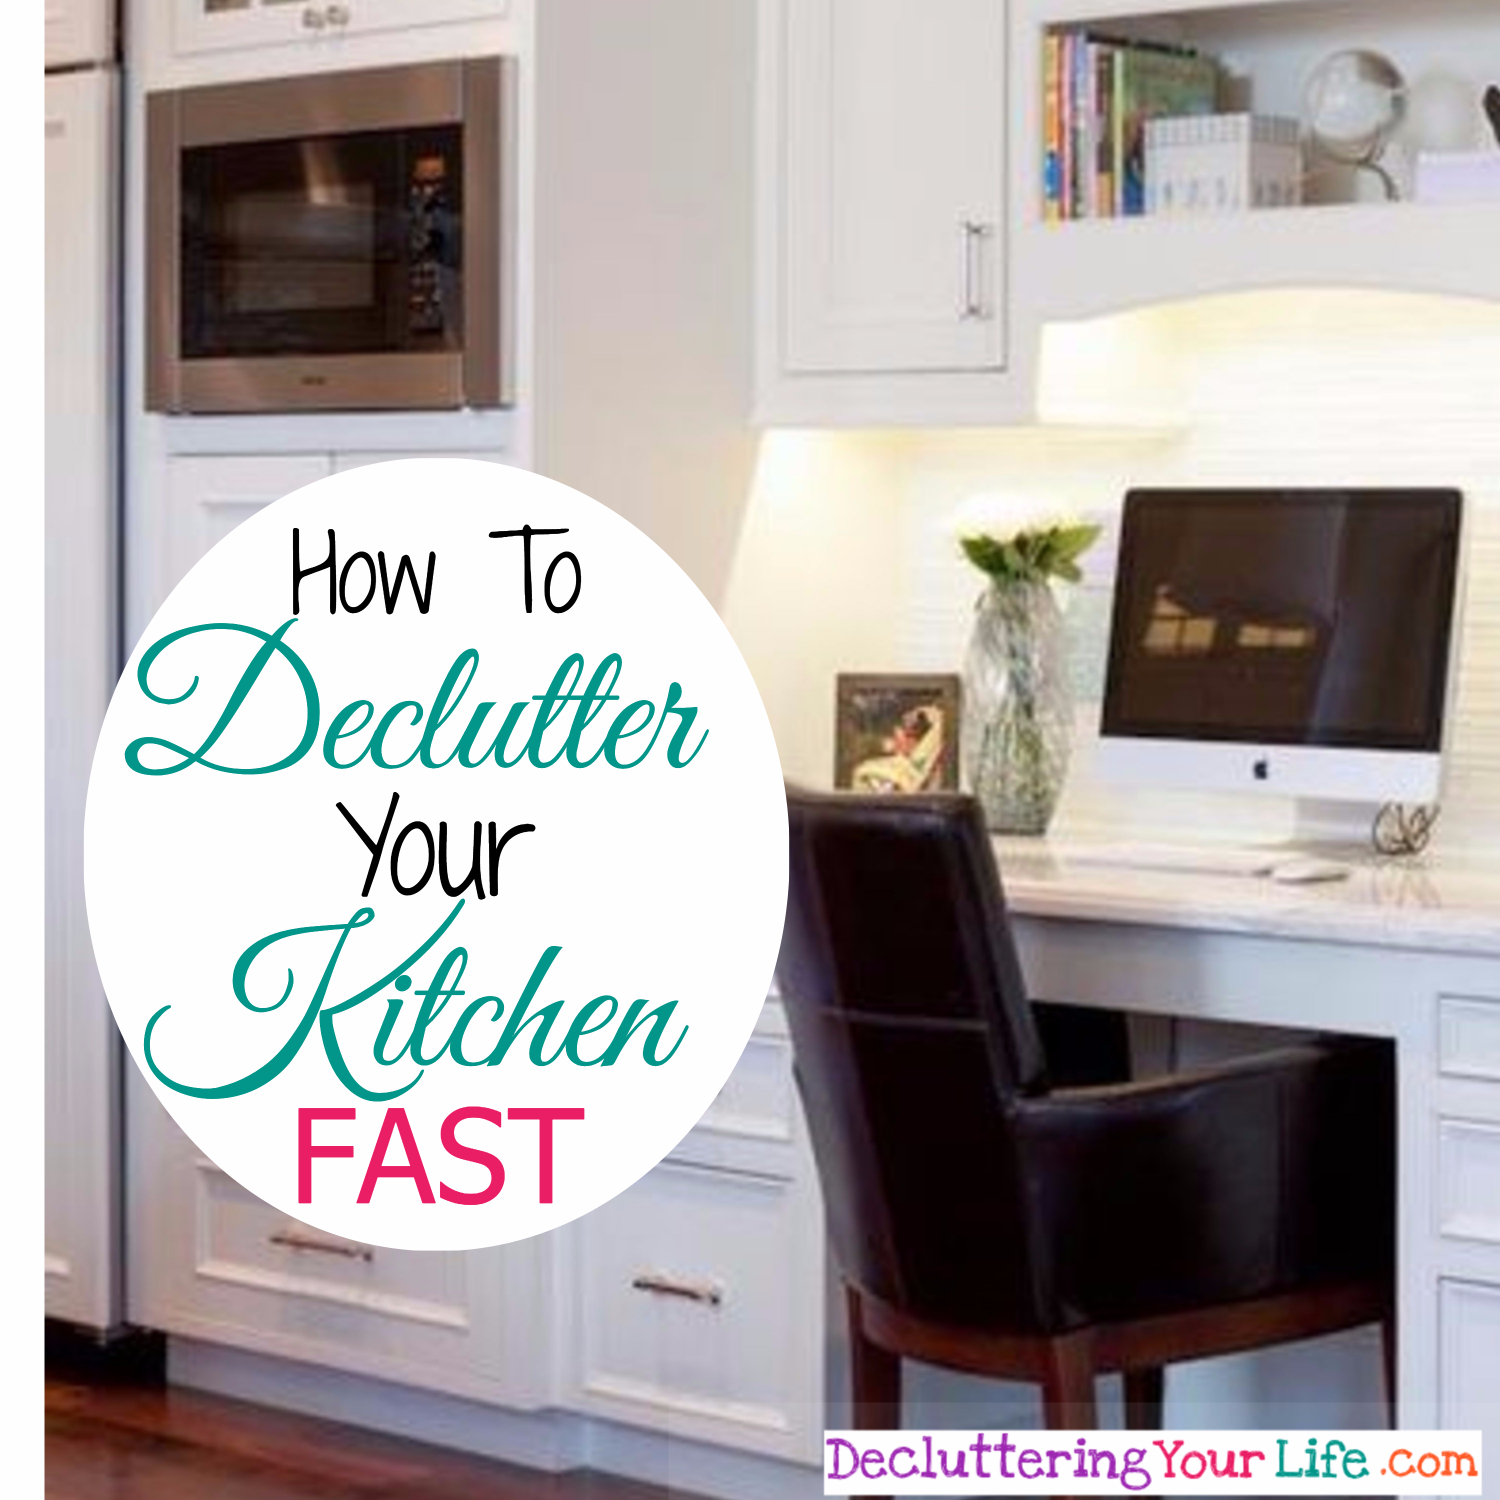 Declutter your kitchen - how to declutter your kitchen FAST with this simple one-day (or less) declutter method.